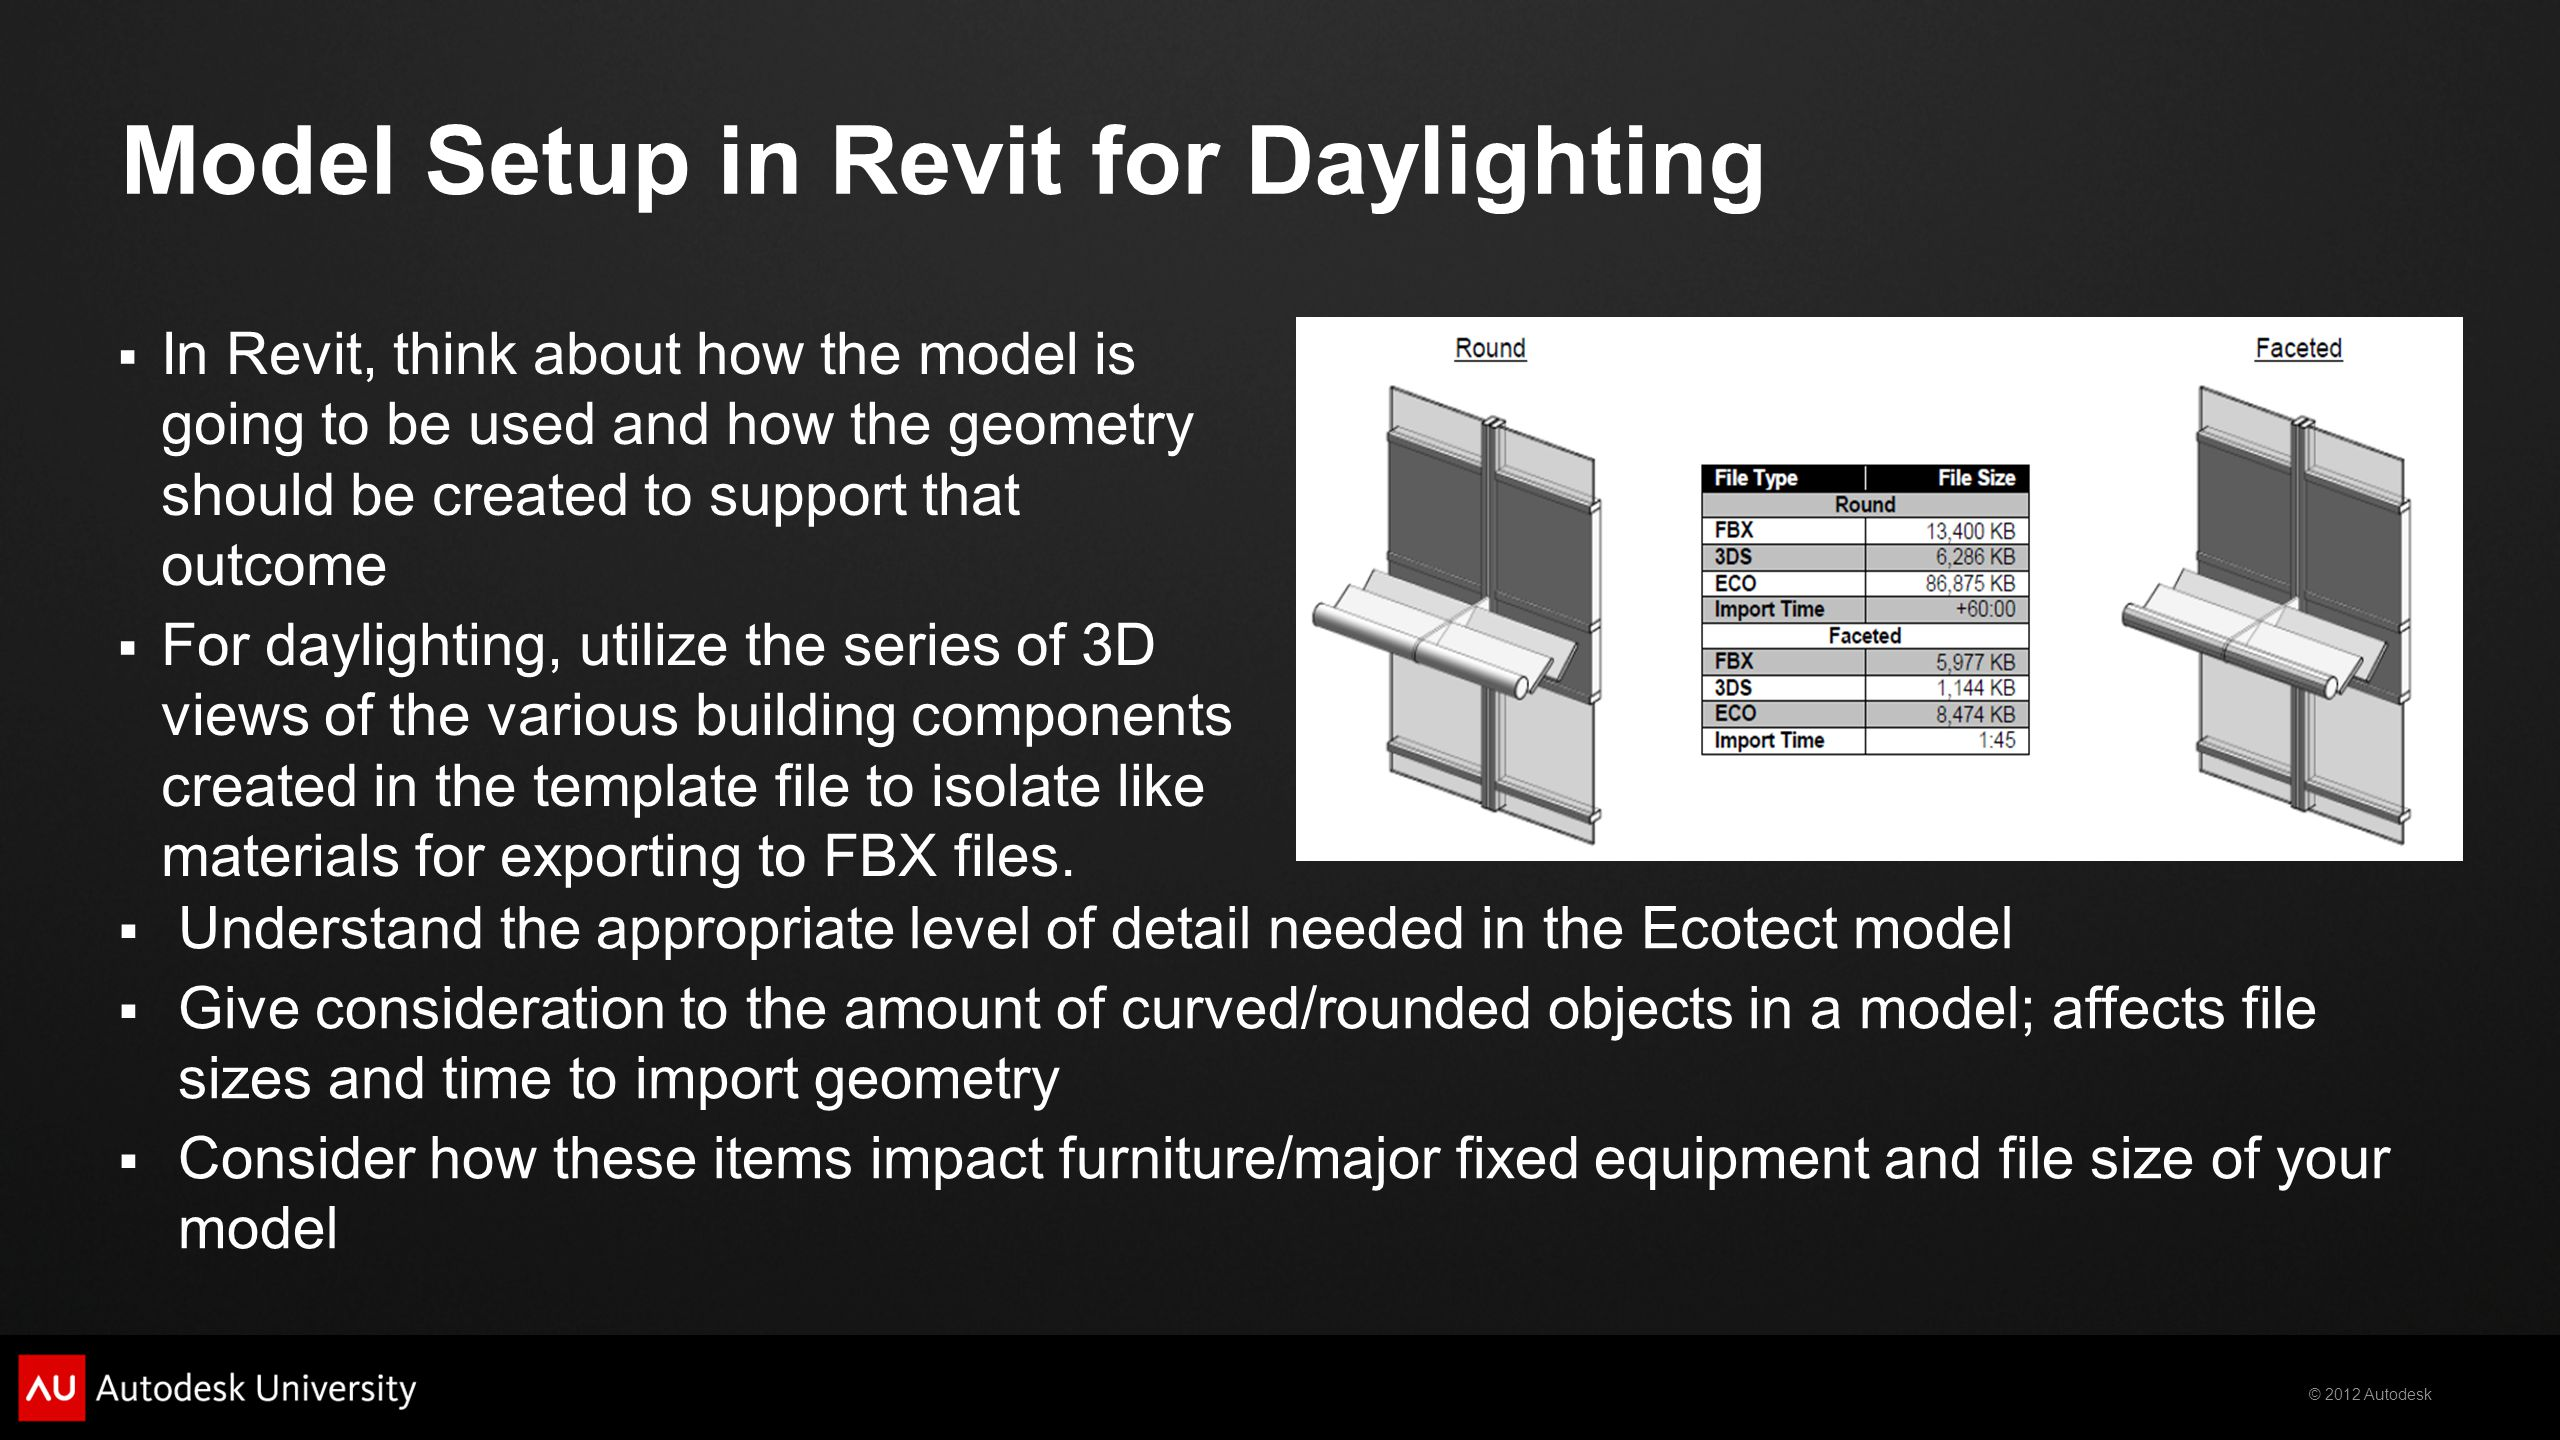 Model Setup in Revit for Daylighting